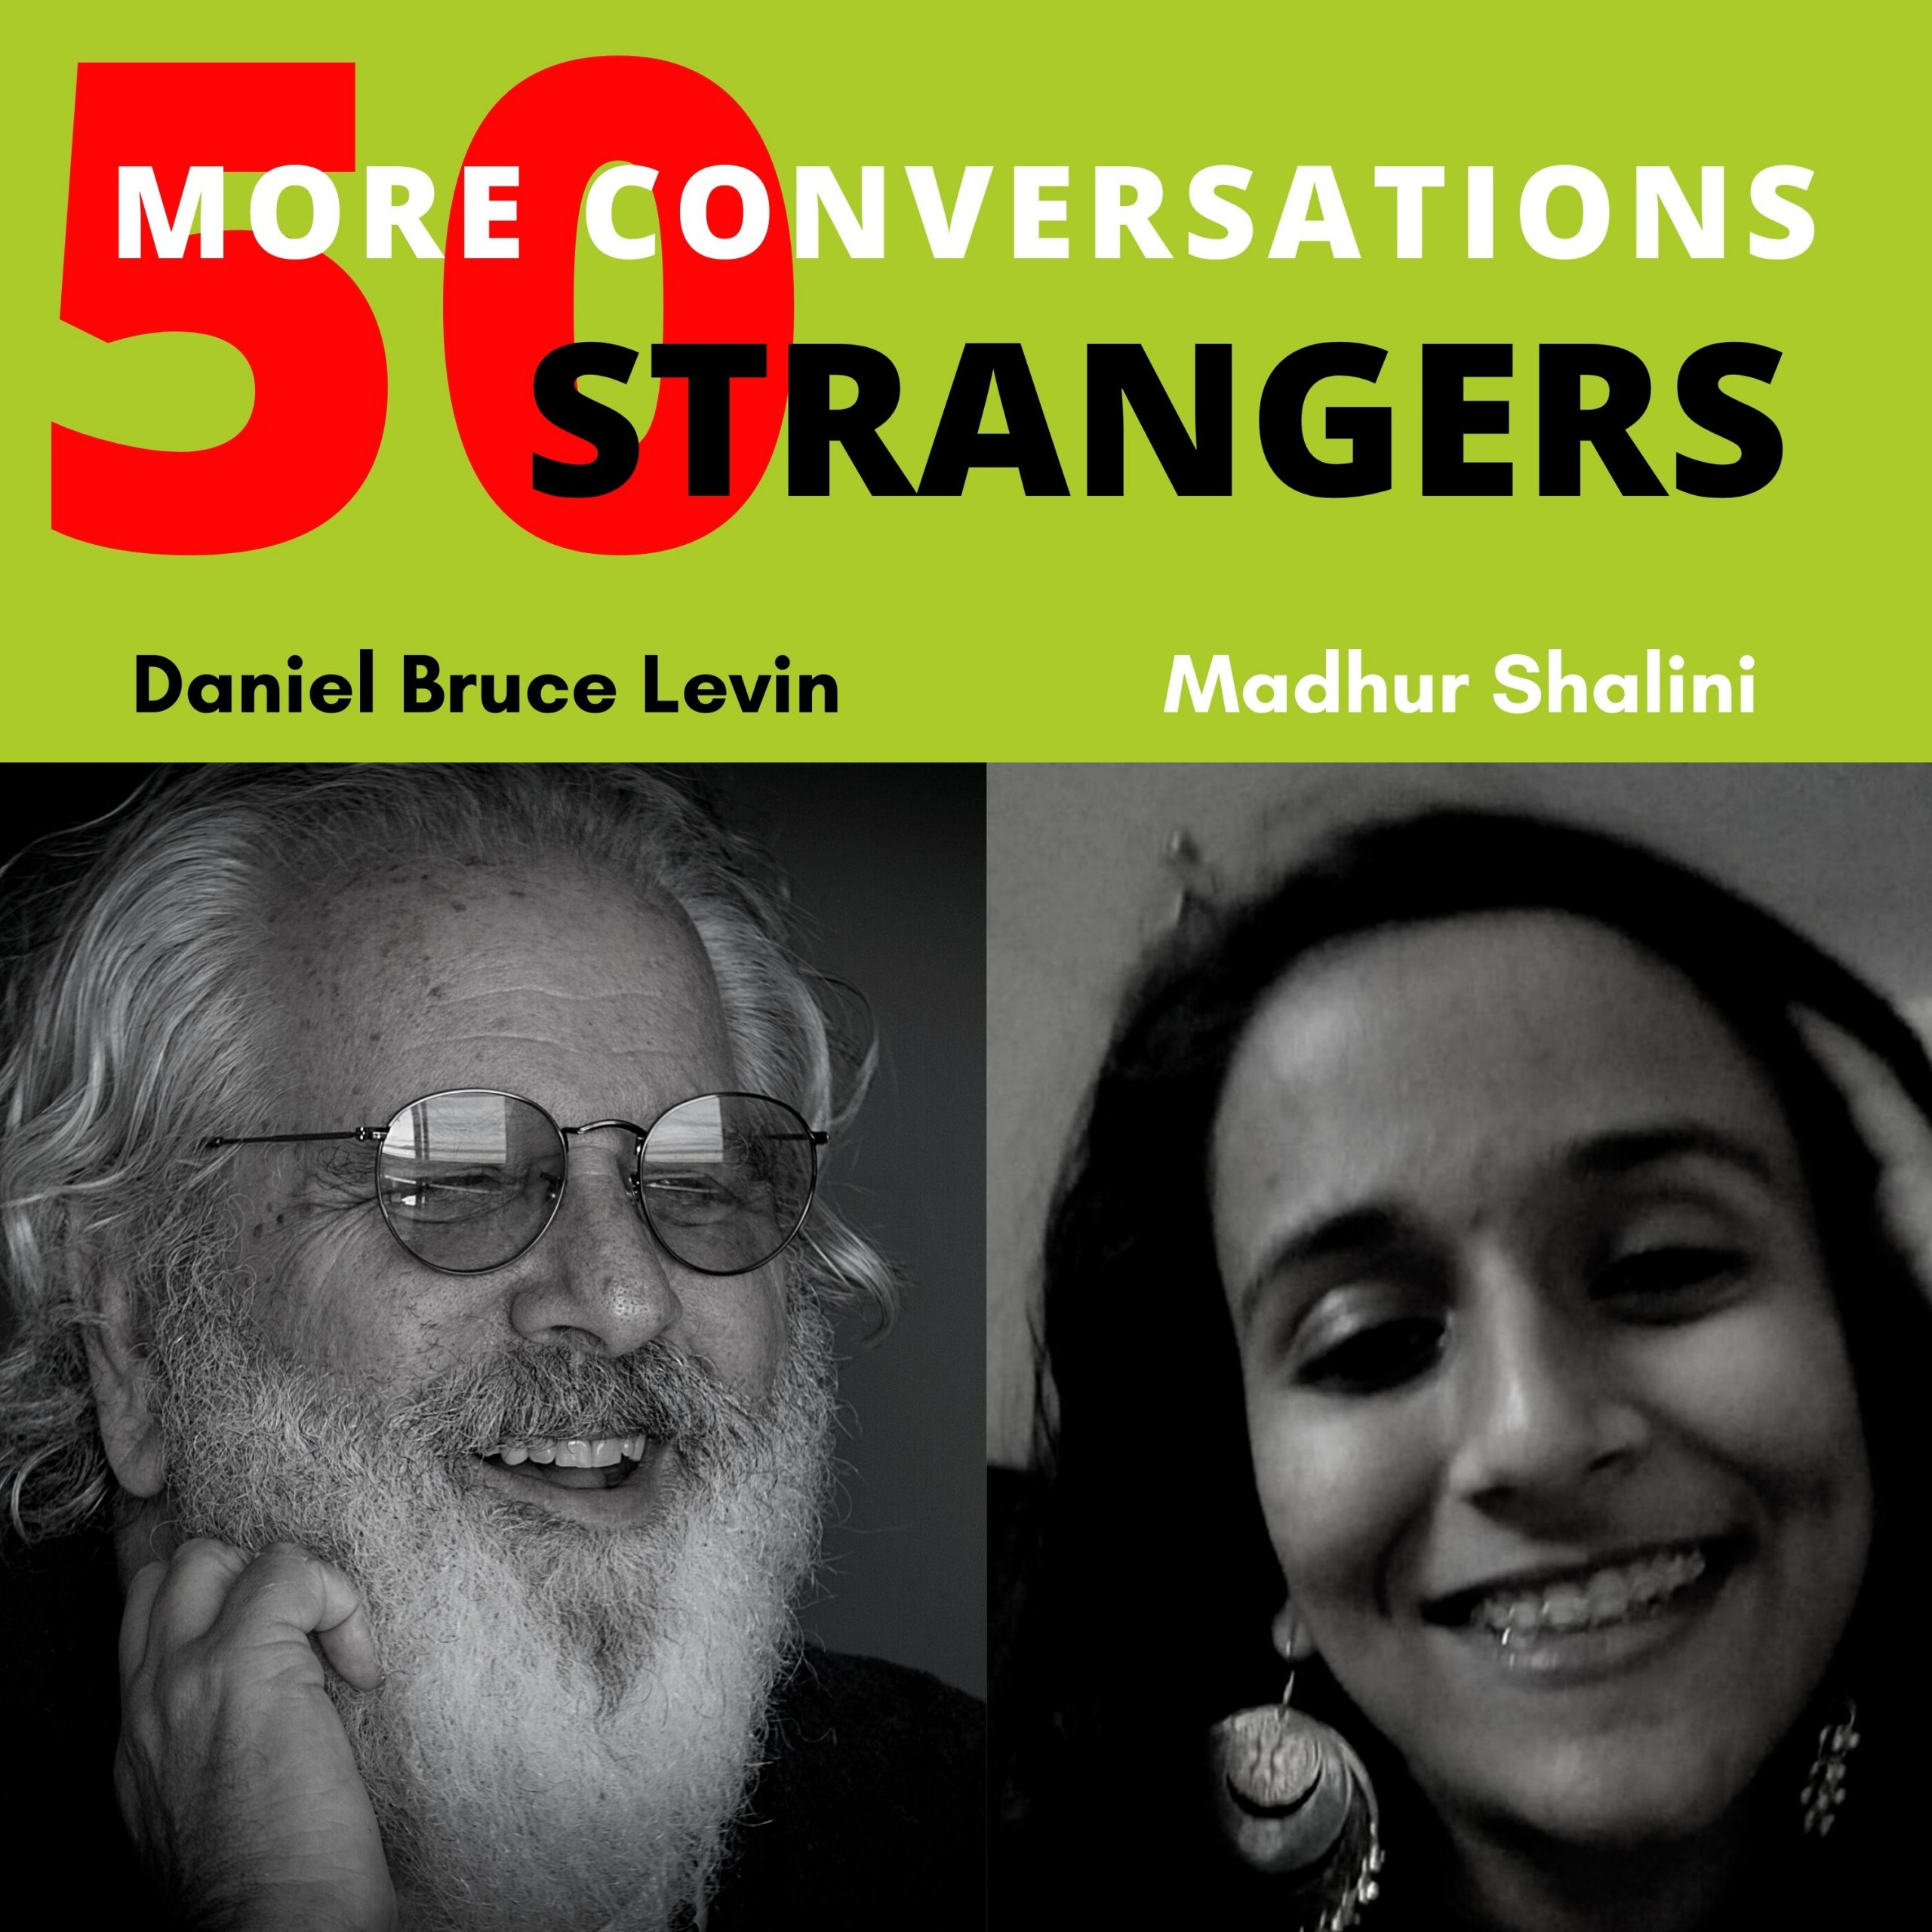 50 More Conversations with 50 More Strangers with Madhur Shalini